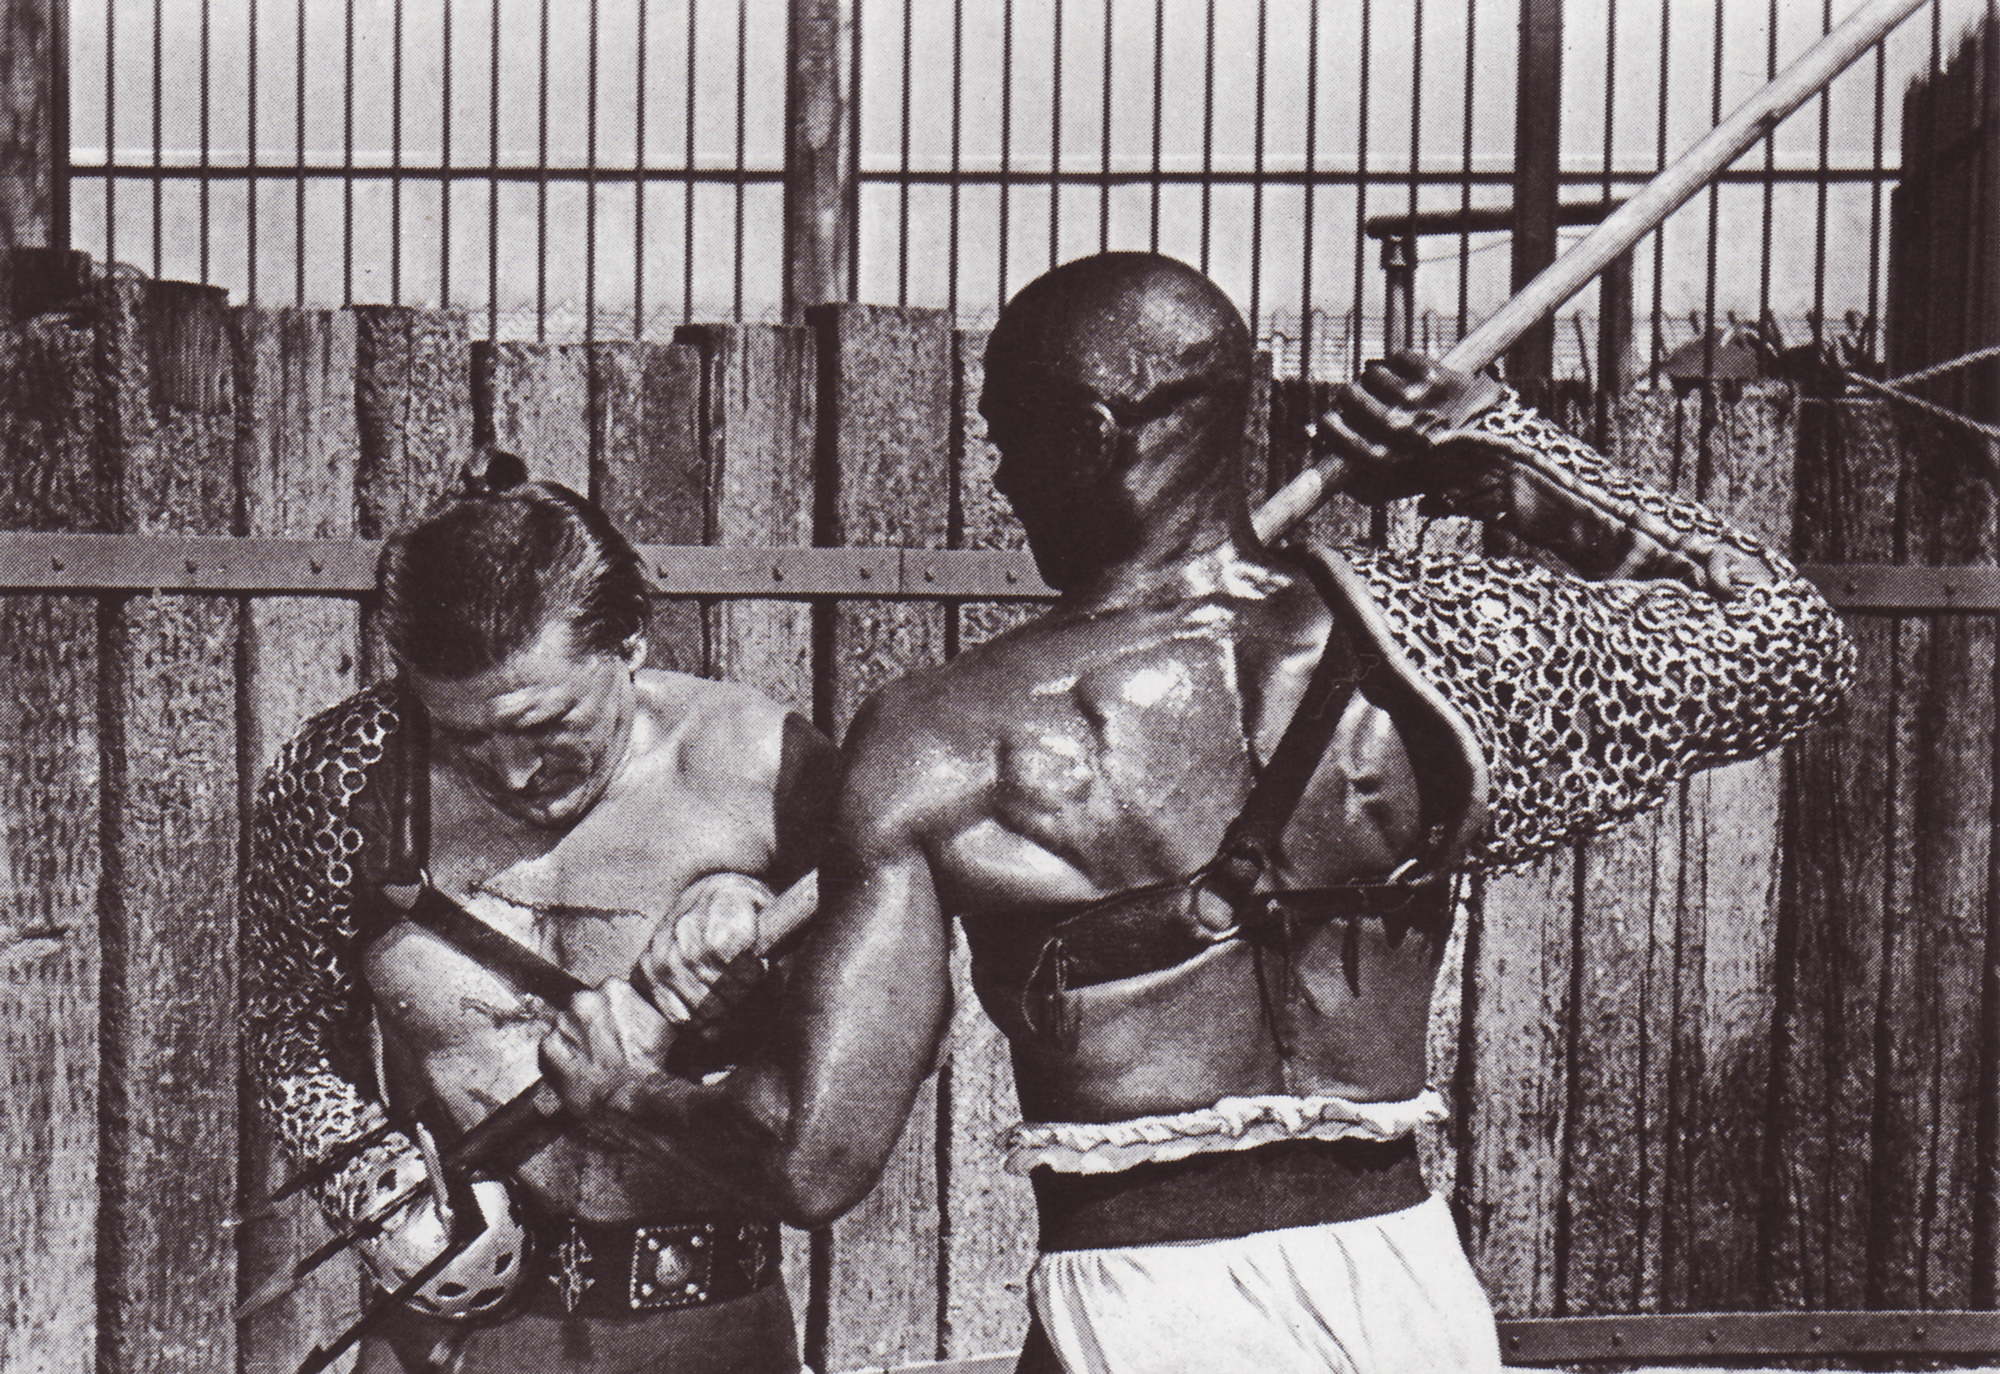 Kirk Douglas and Woody Strode in Spartacus (1960)